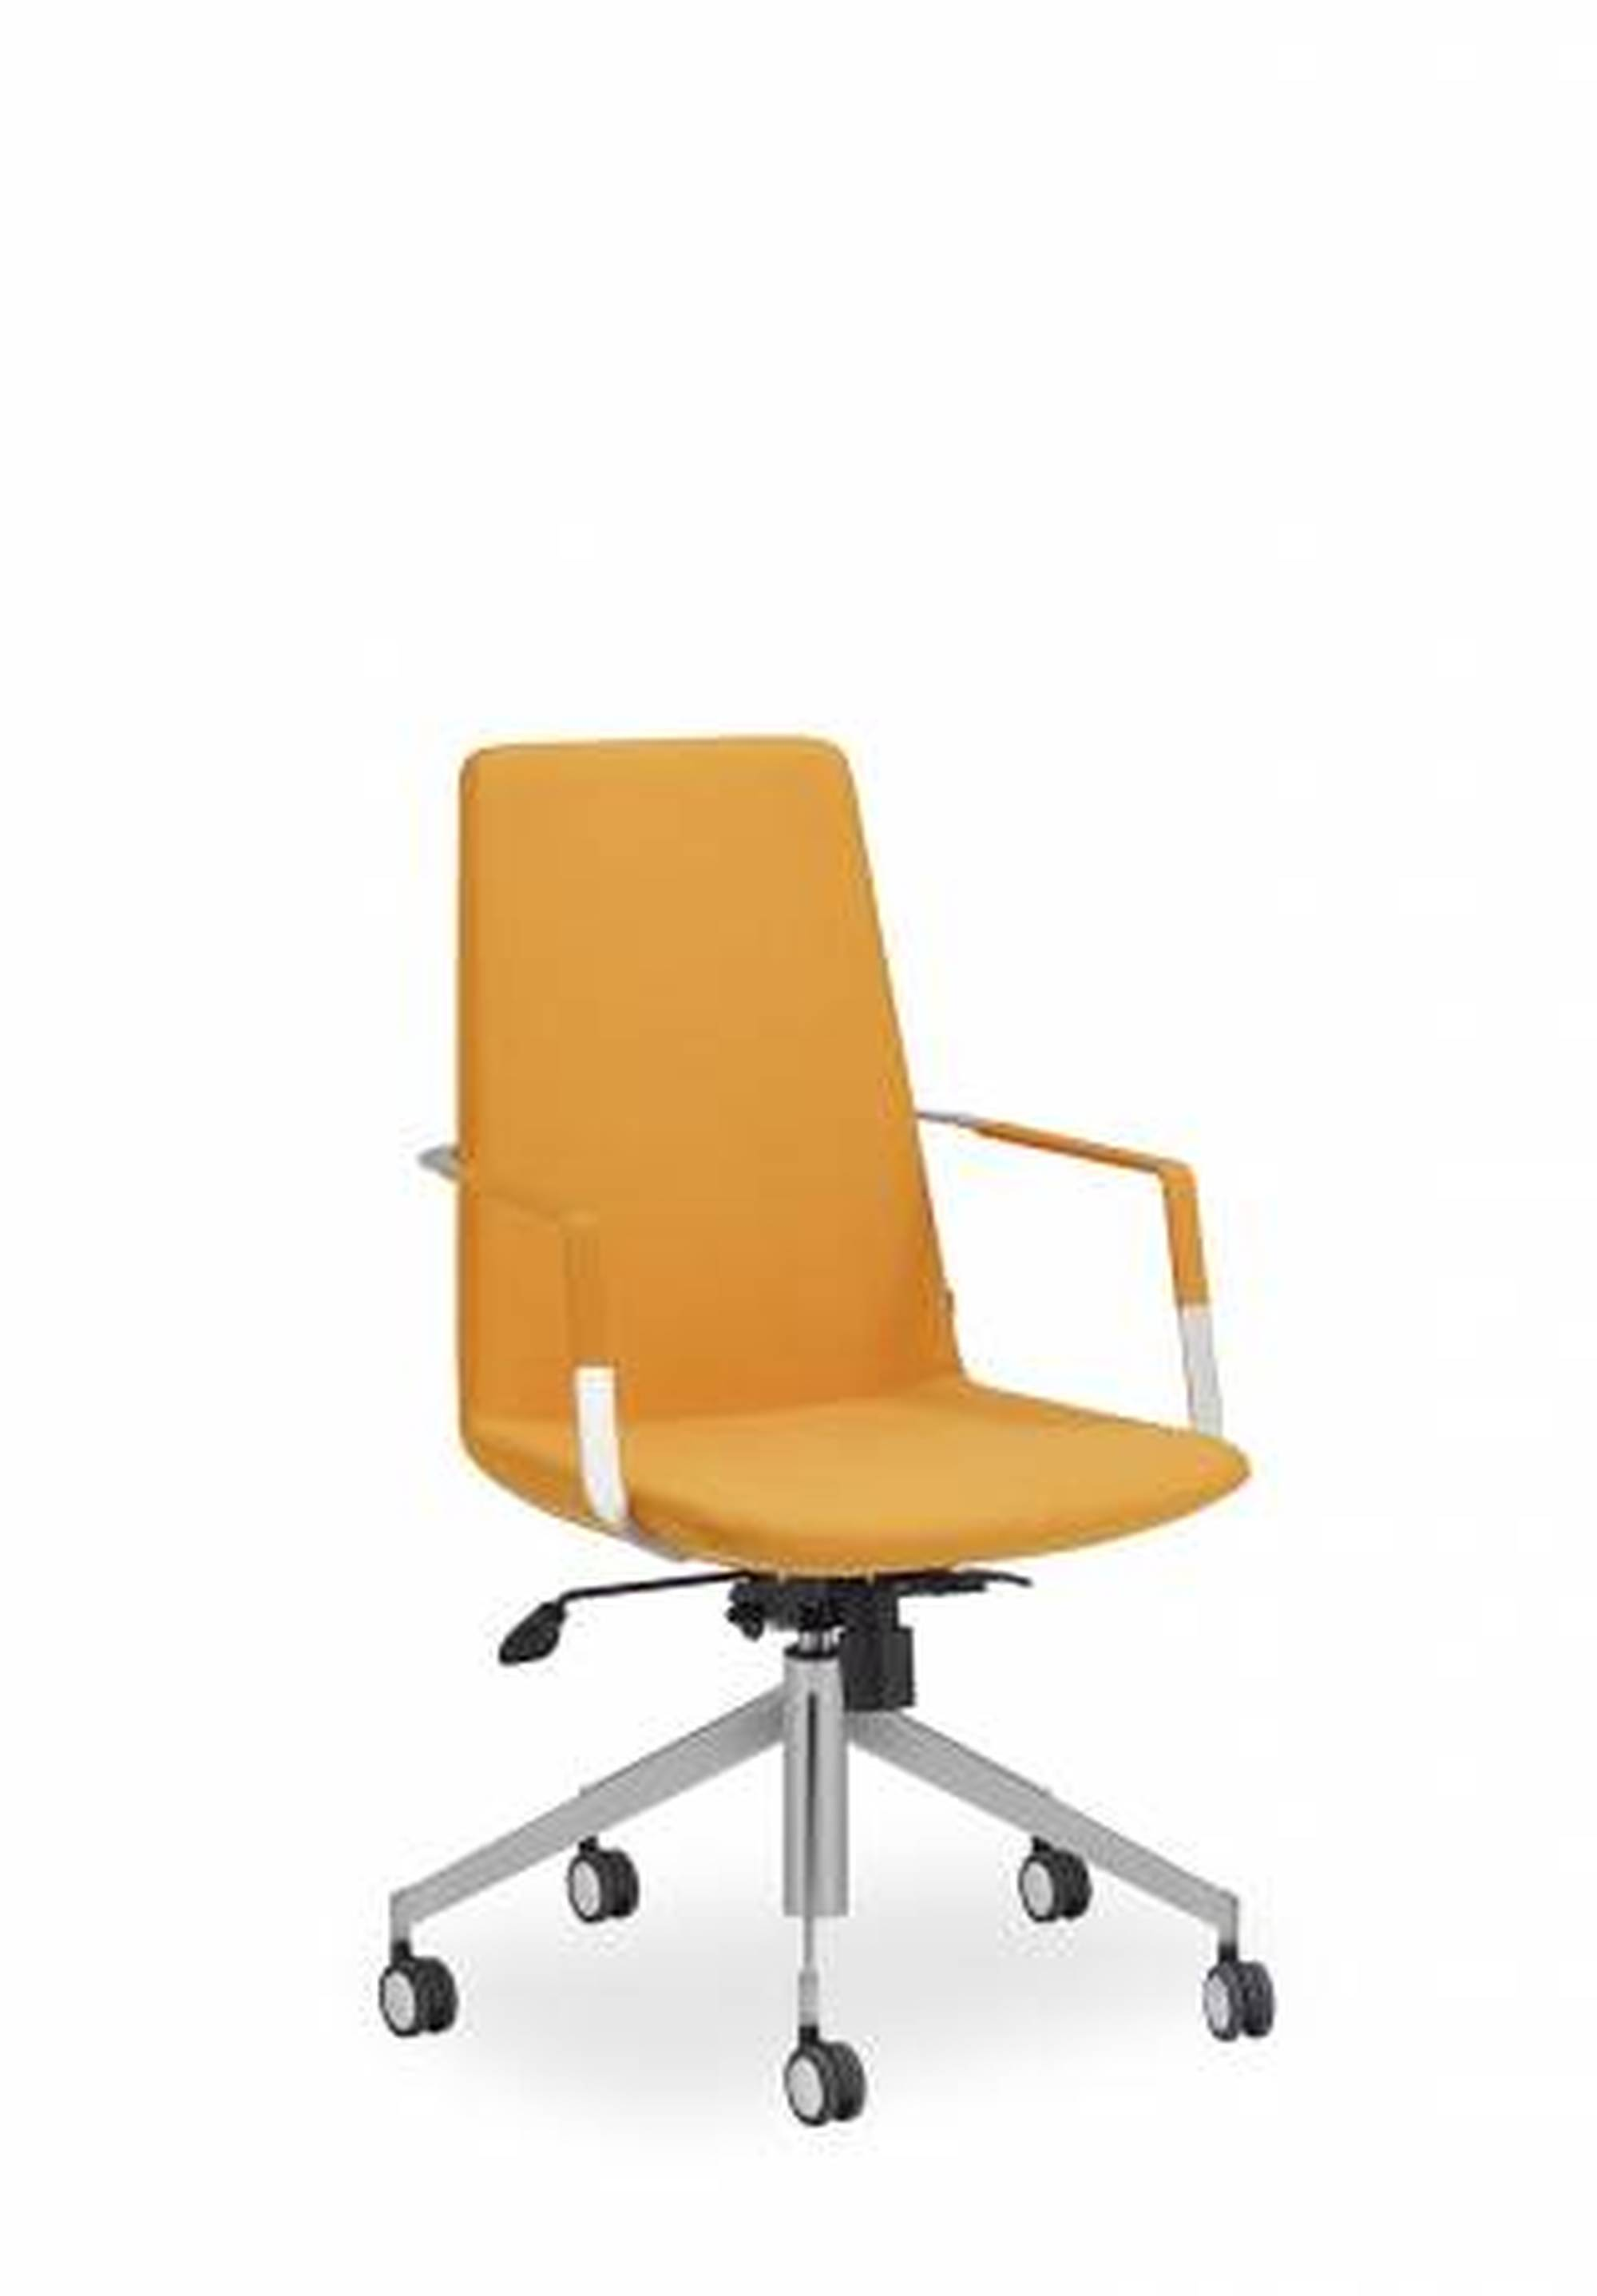 Office furniture local business in uae free classifieds for Furniture uae